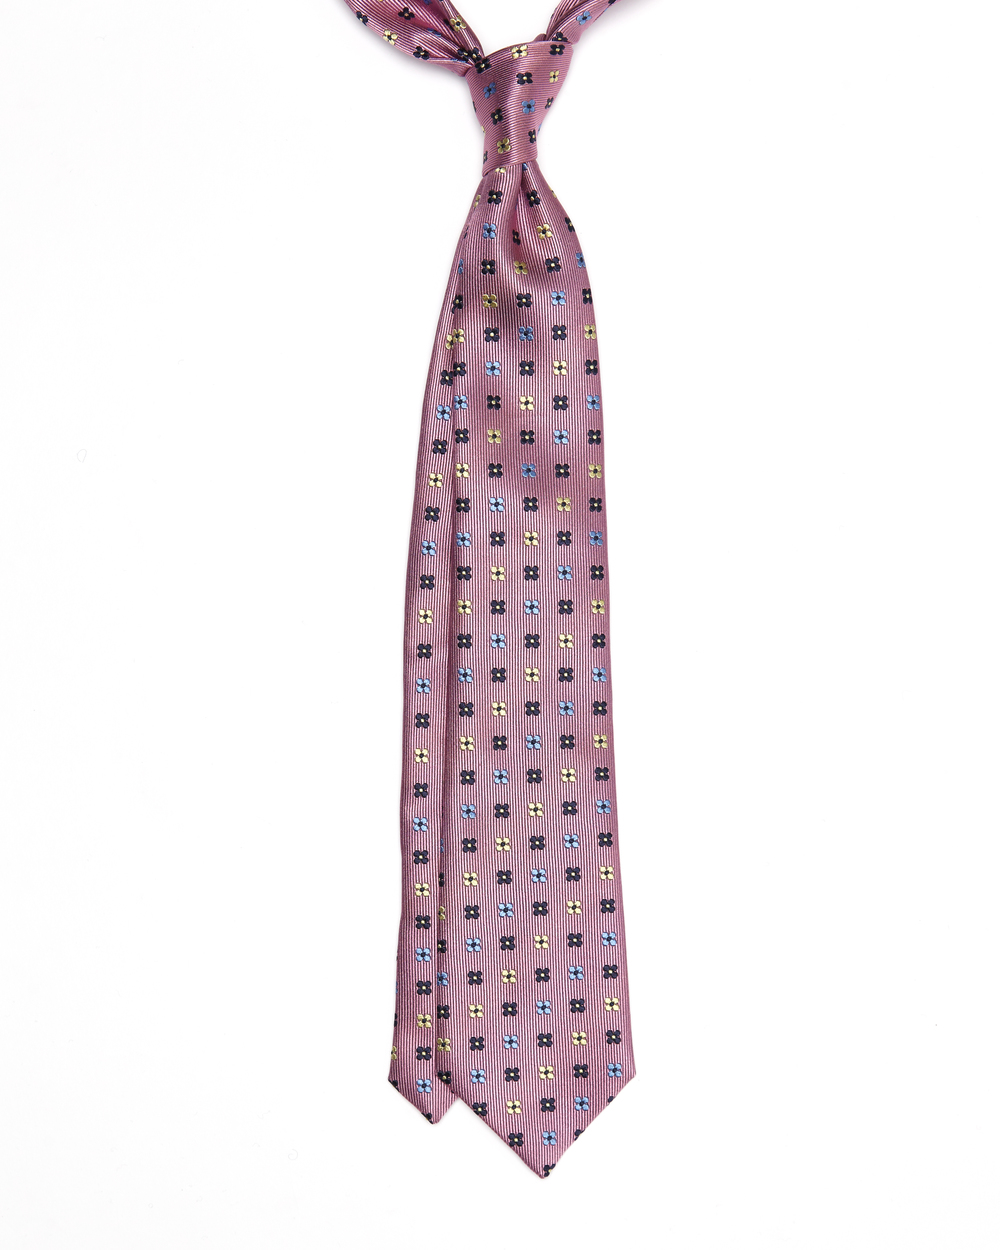 Alastair Tie | 100% Silk Jacquard Floral Neat | Colours: Pink base With Navy, Sky Blue And Off-white Flowers